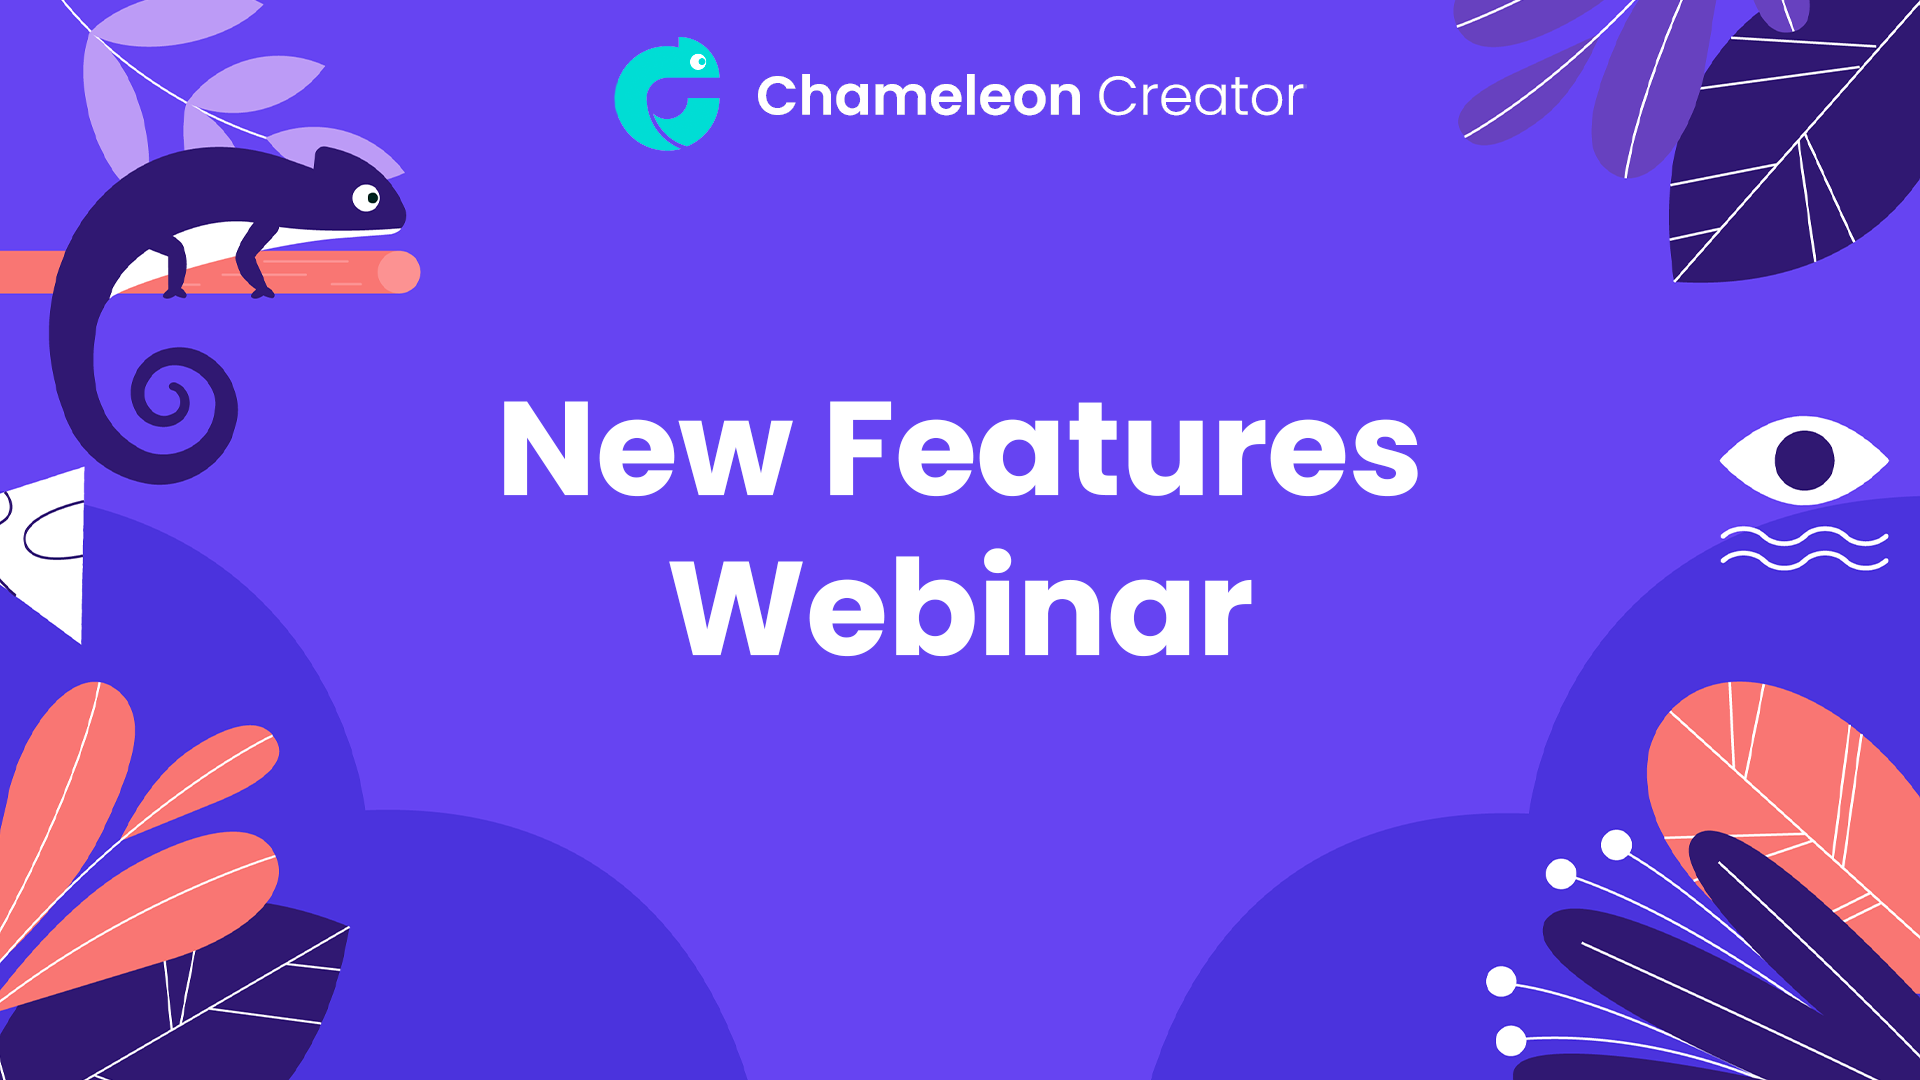 Chameleon Creator New Features Webinar Home Page